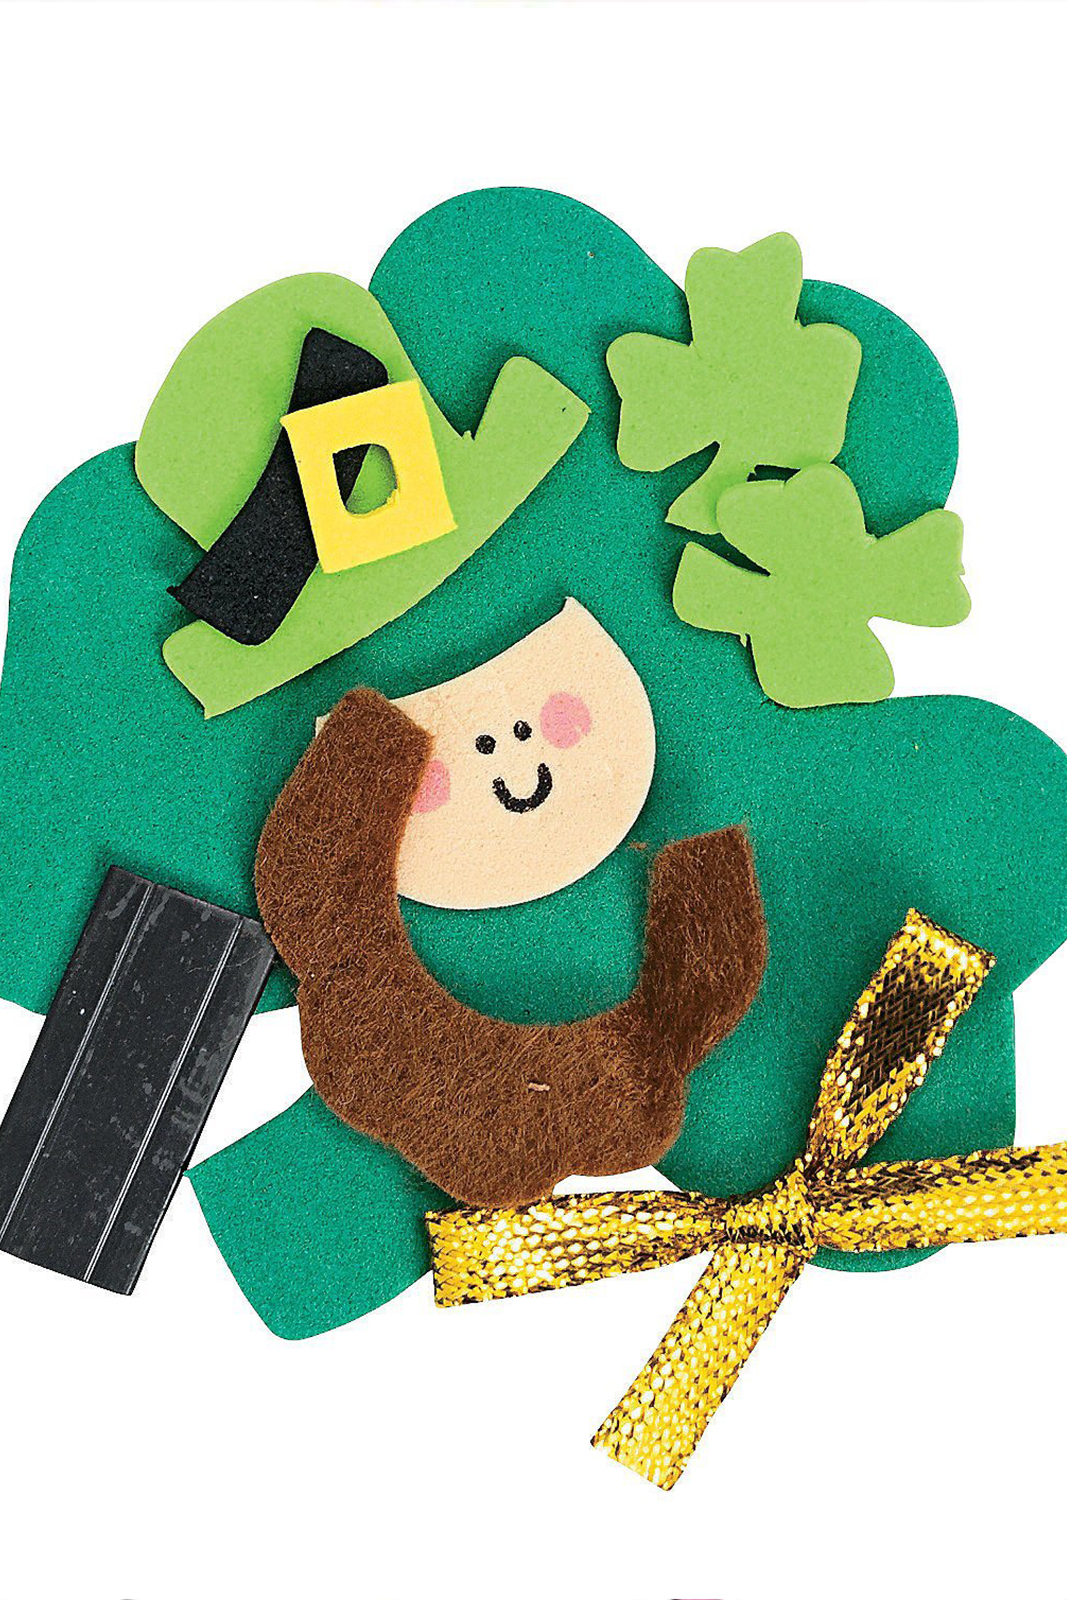 st patrick day craft ideas 12 easy st s day crafts best diy ideas for st 7187